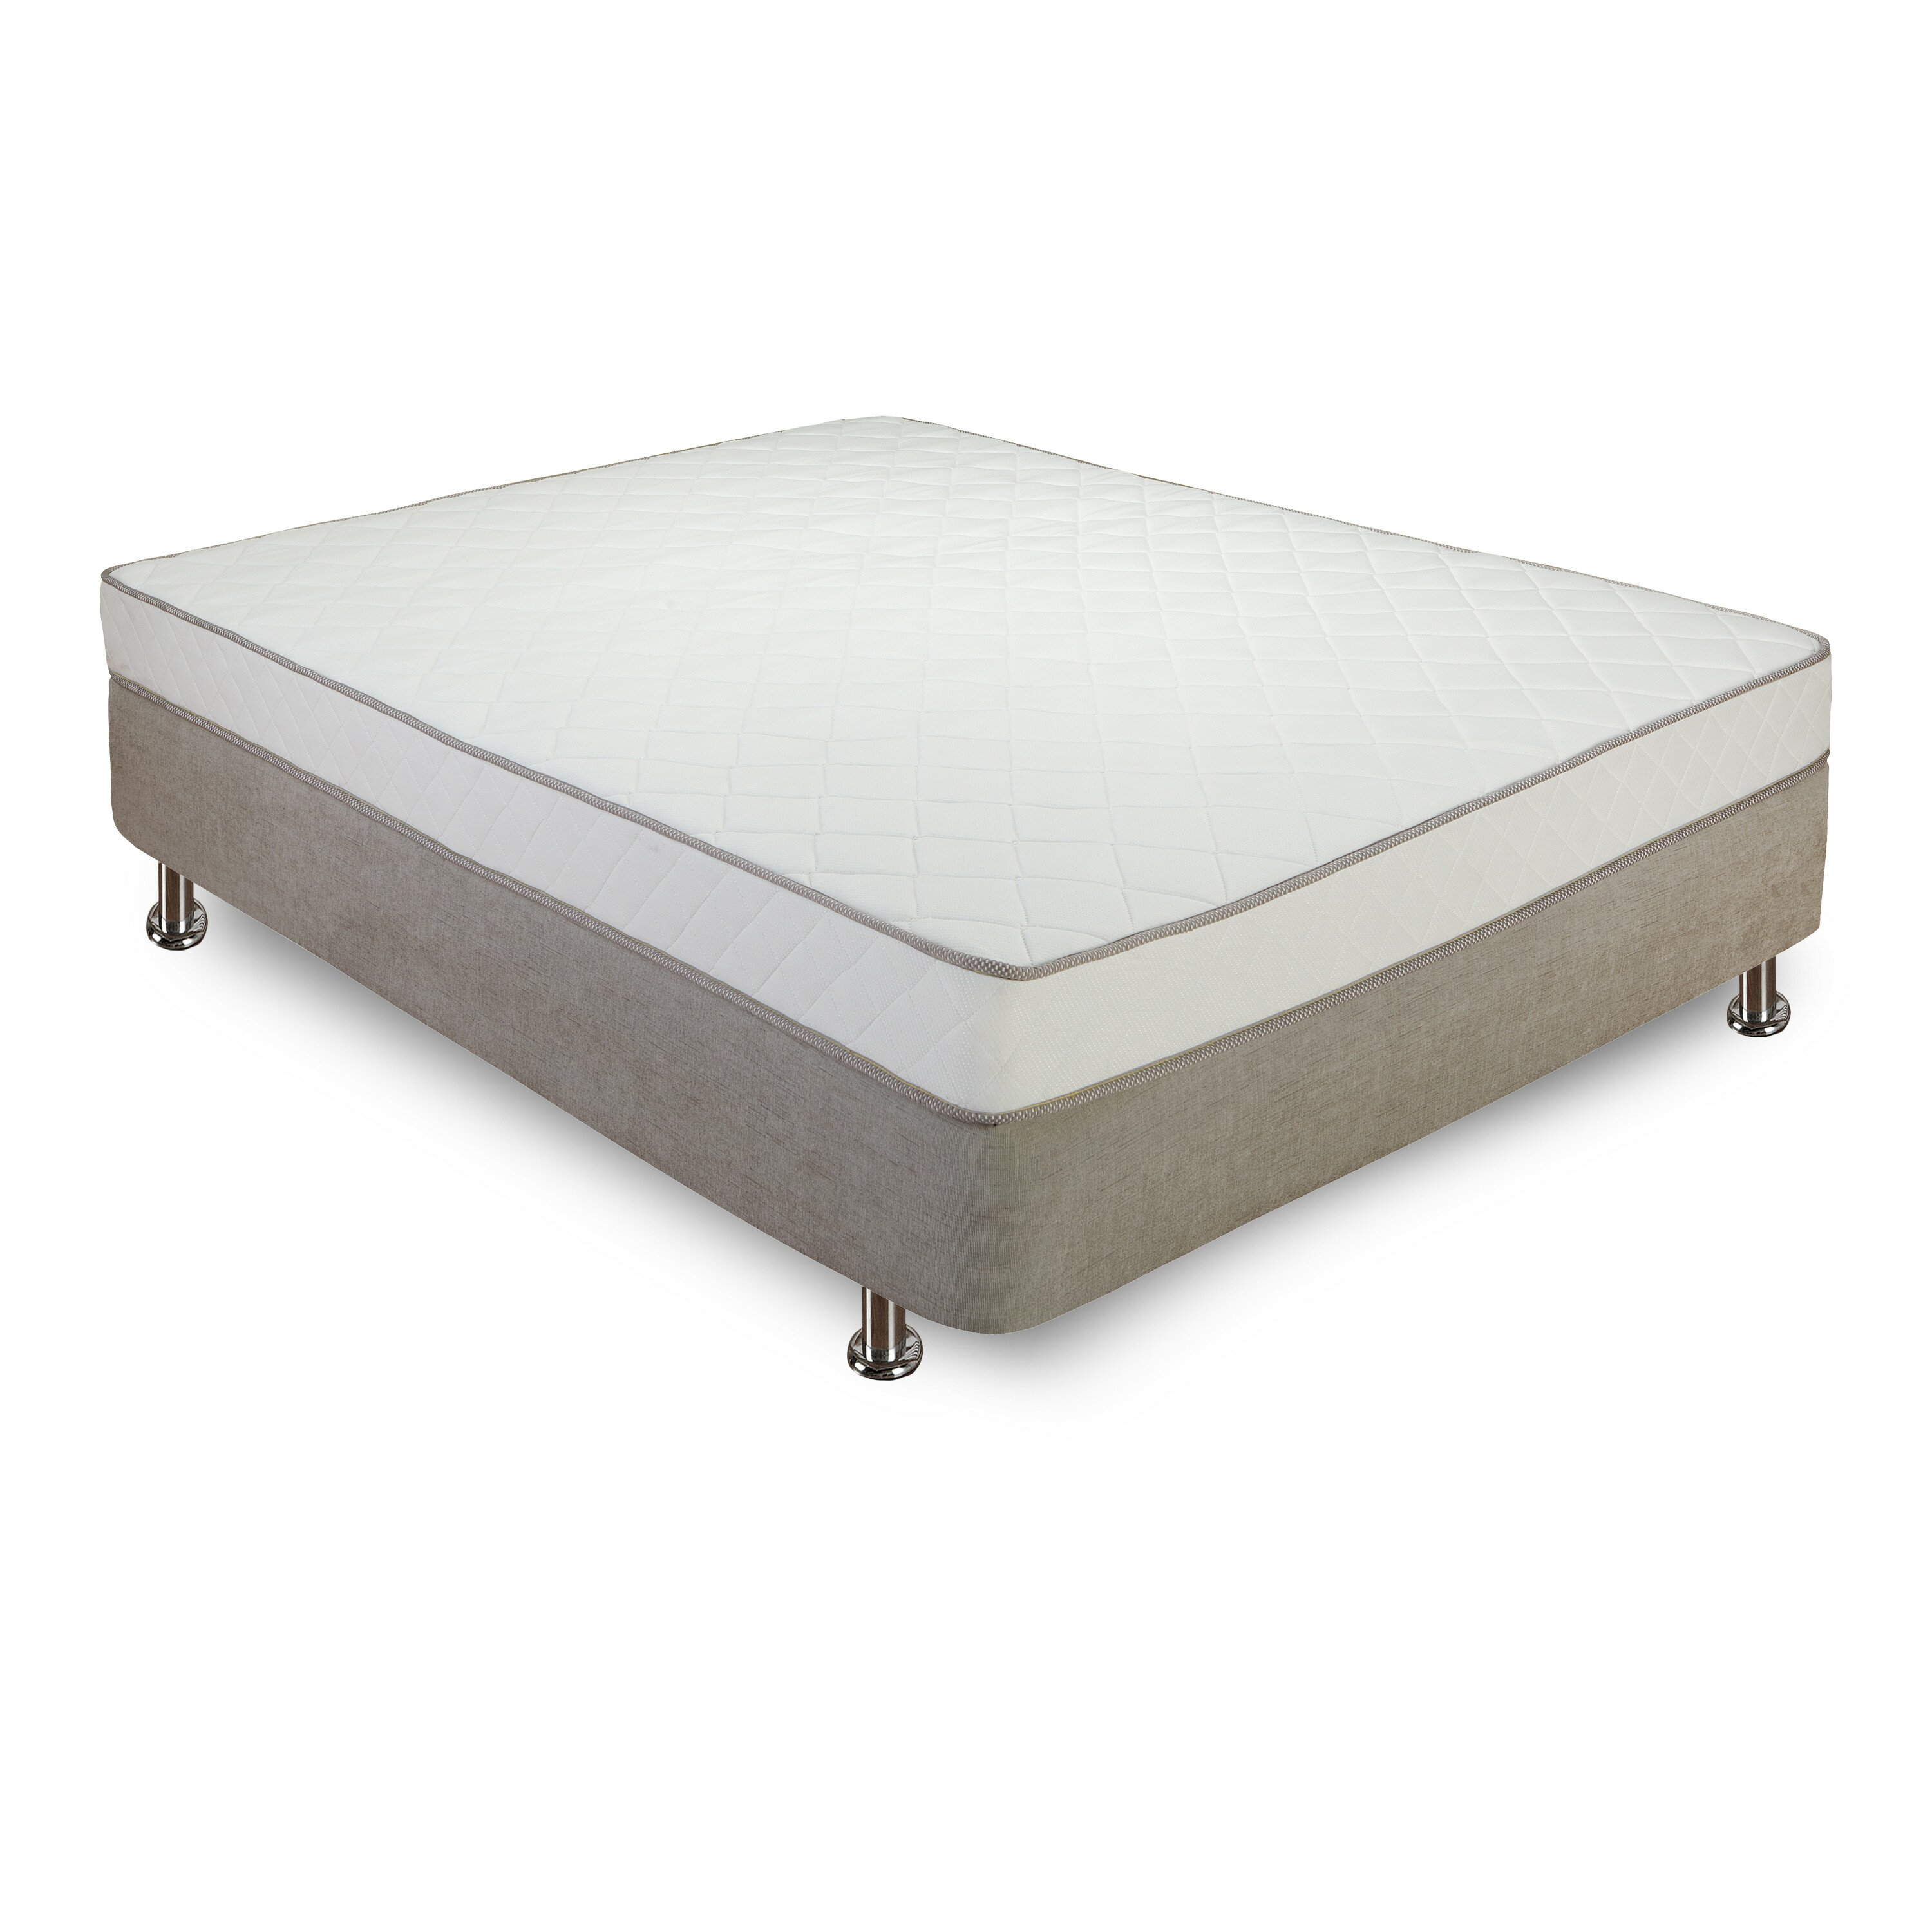 "Classic Brands Innerspring Coil 7"" Mattress & Reviews"